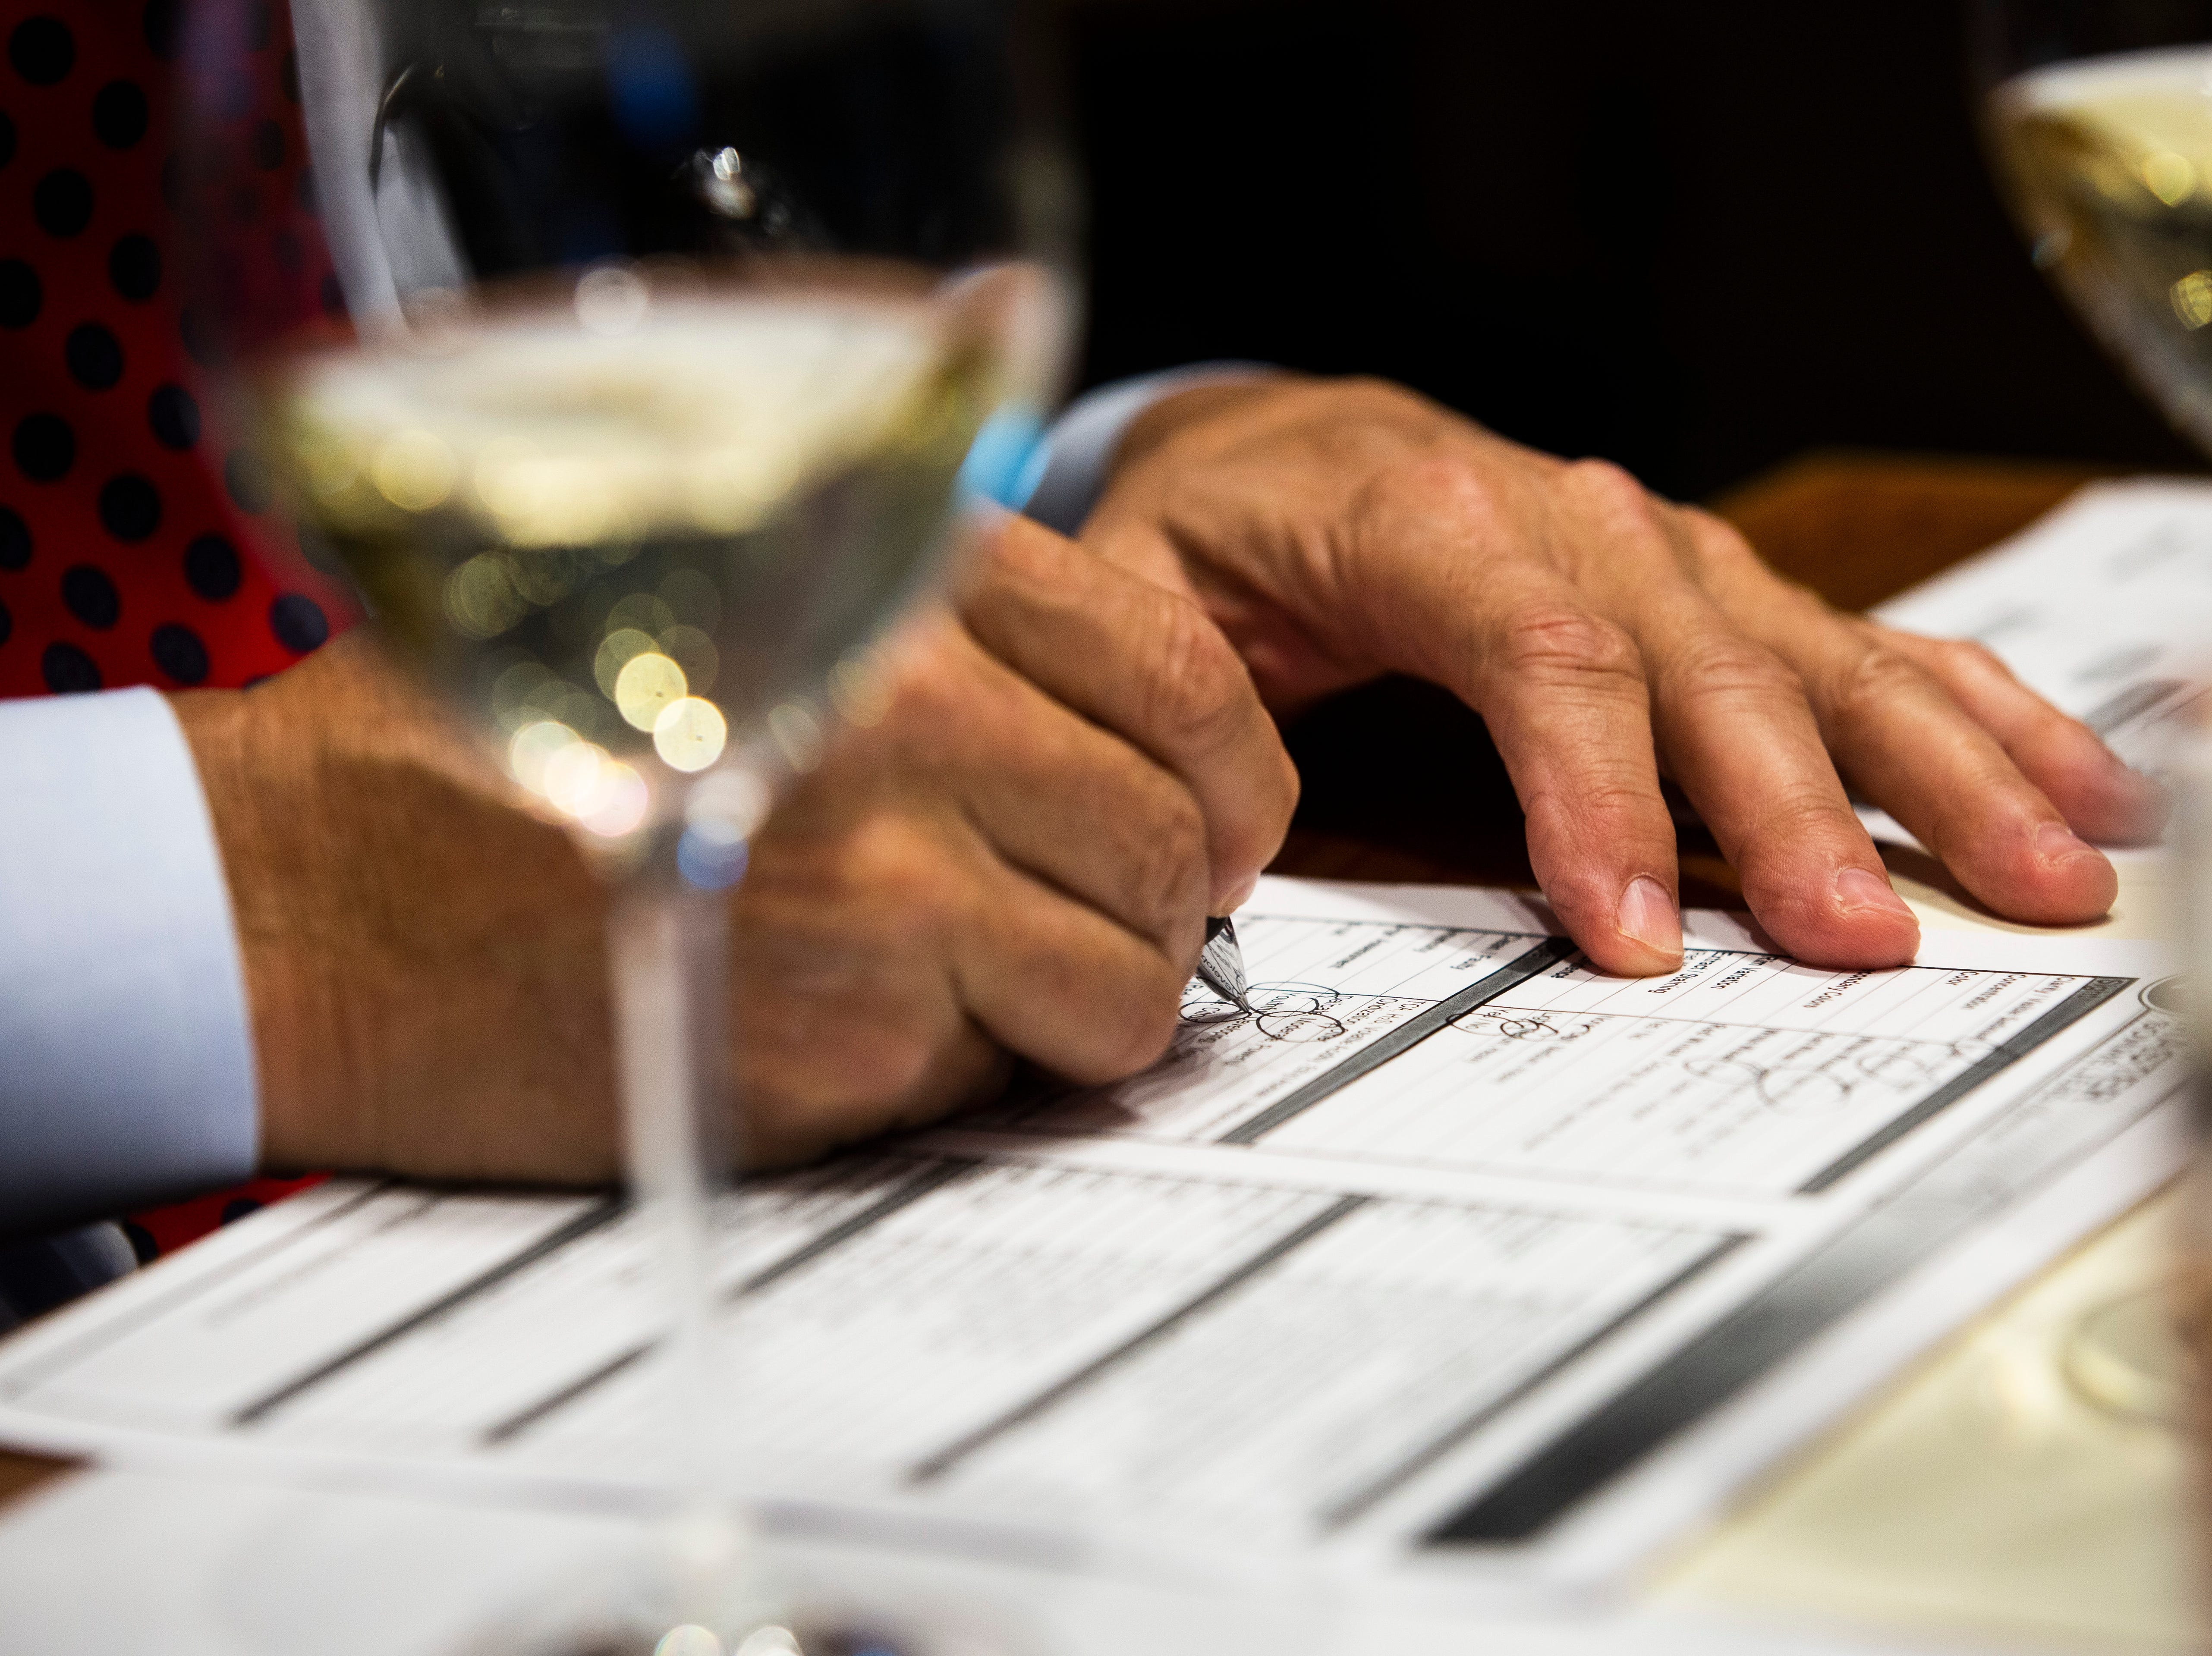 Eric Blais, the wine director and certified sommelier at USS Nemo, writes down his deductions for a blind taste-test of white wine during the Somms Showdown, organized by Break Thru Beverage Group, at The Cave Bistro & Wine Bar in Naples on Tuesday, Nov. 13, 2018.